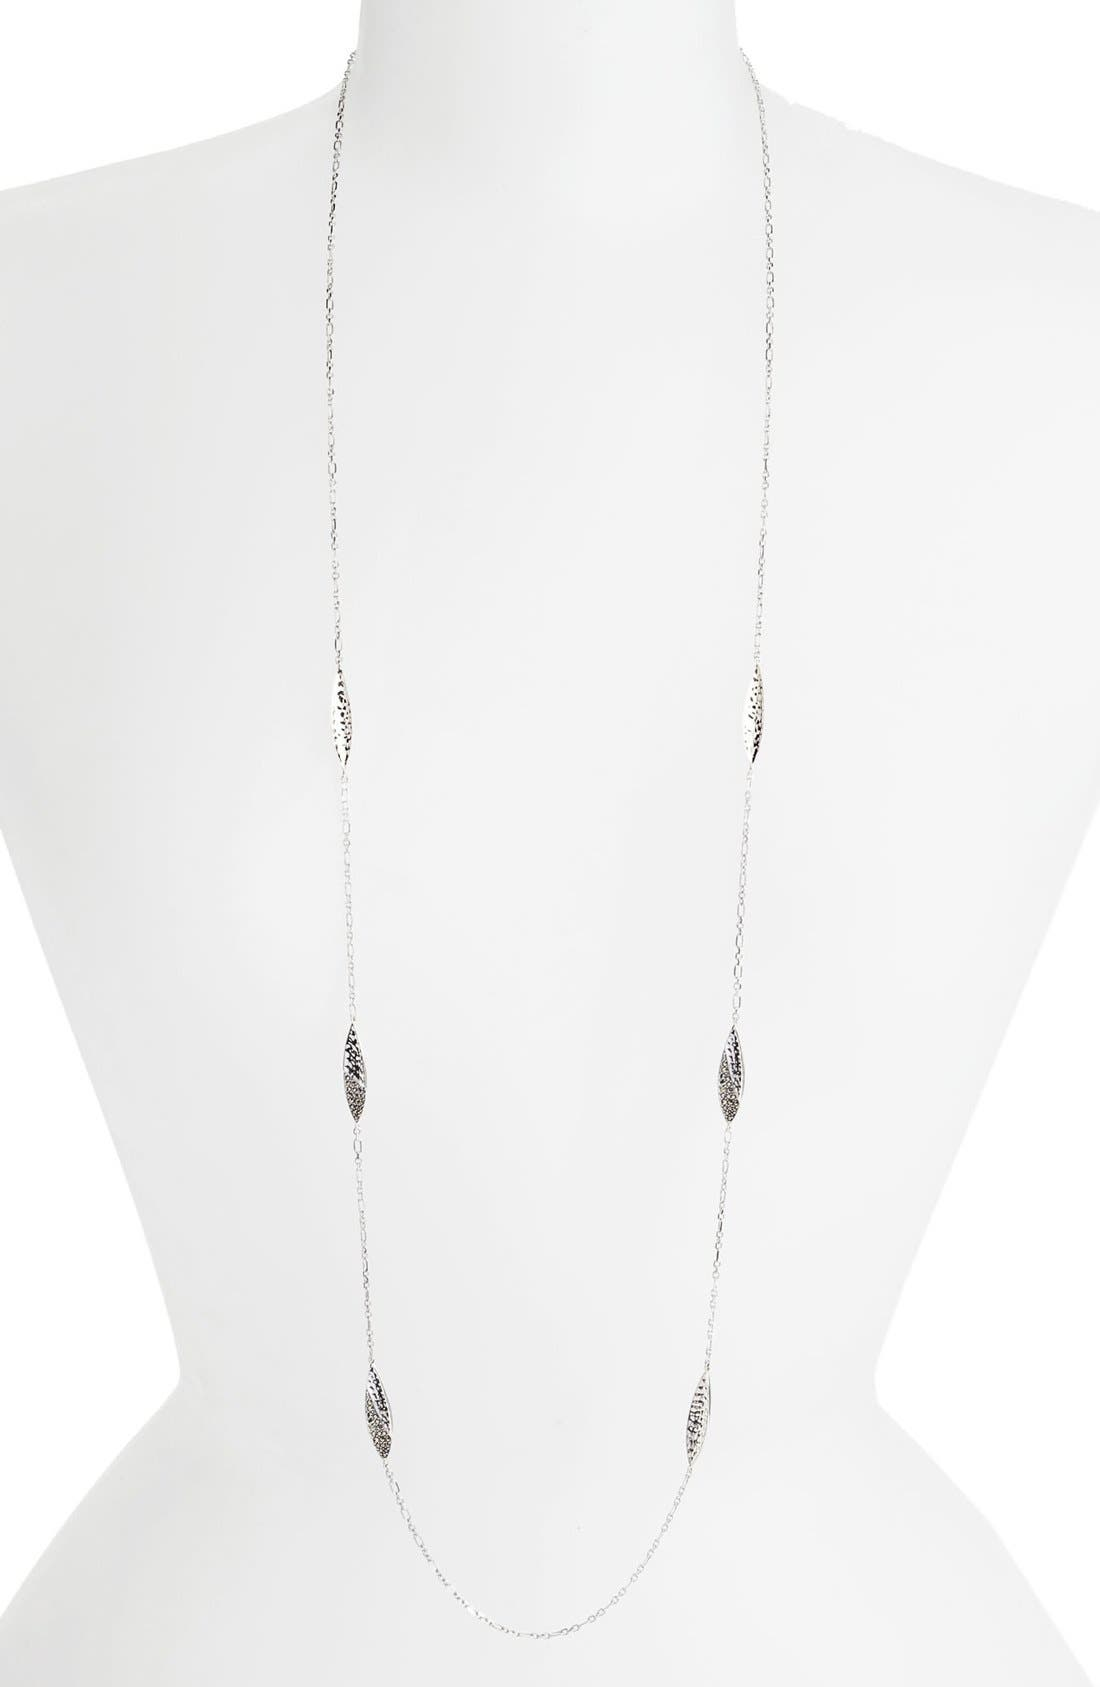 Alternate Image 1 Selected - Judith Jack 'Silver Rain' Extra Long Station Necklace (Nordstrom Exclusive)